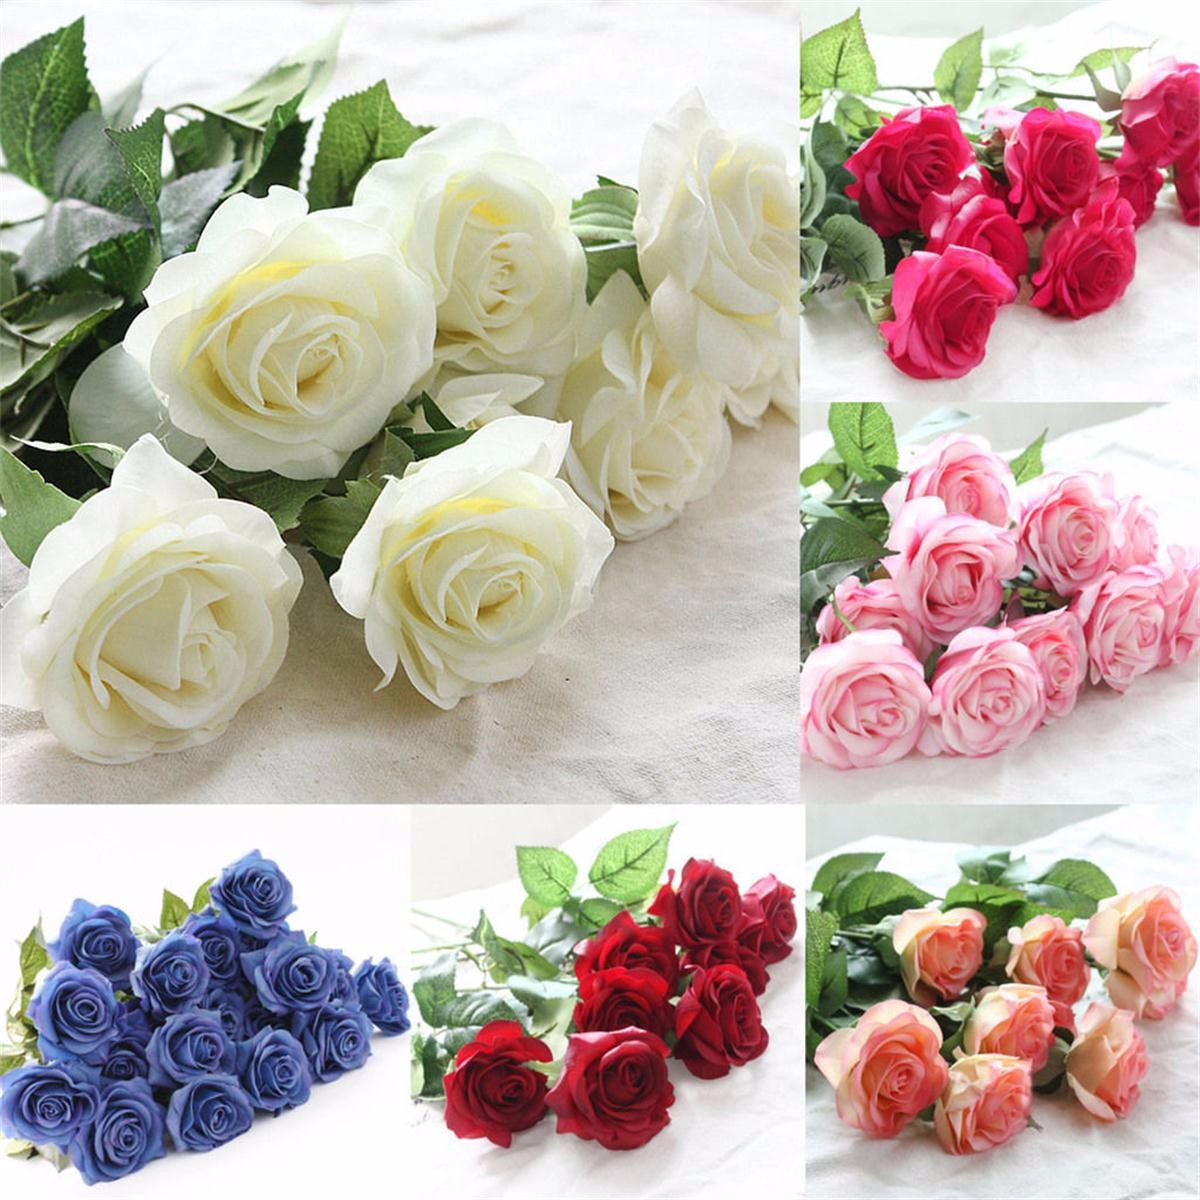 1 Head Real Latex Touch Rose Artifical Flowers Wedding Party Birthday Party Home Bouquet Decor 44*6cm